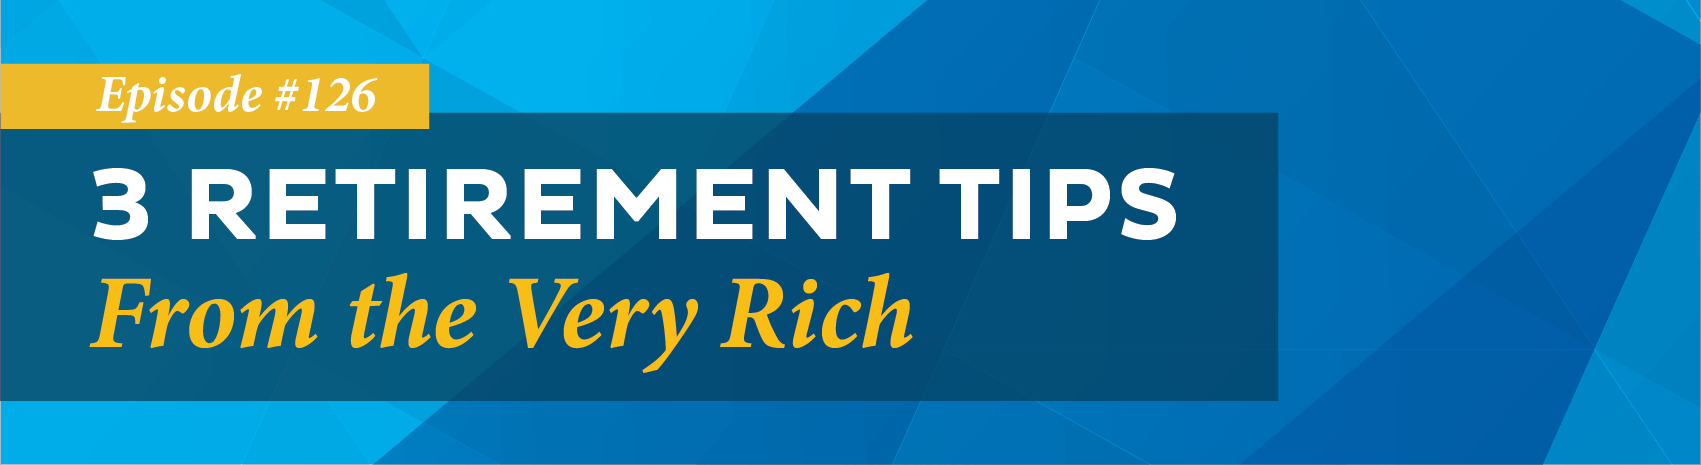 3 Retirement Tips from the Very Rich